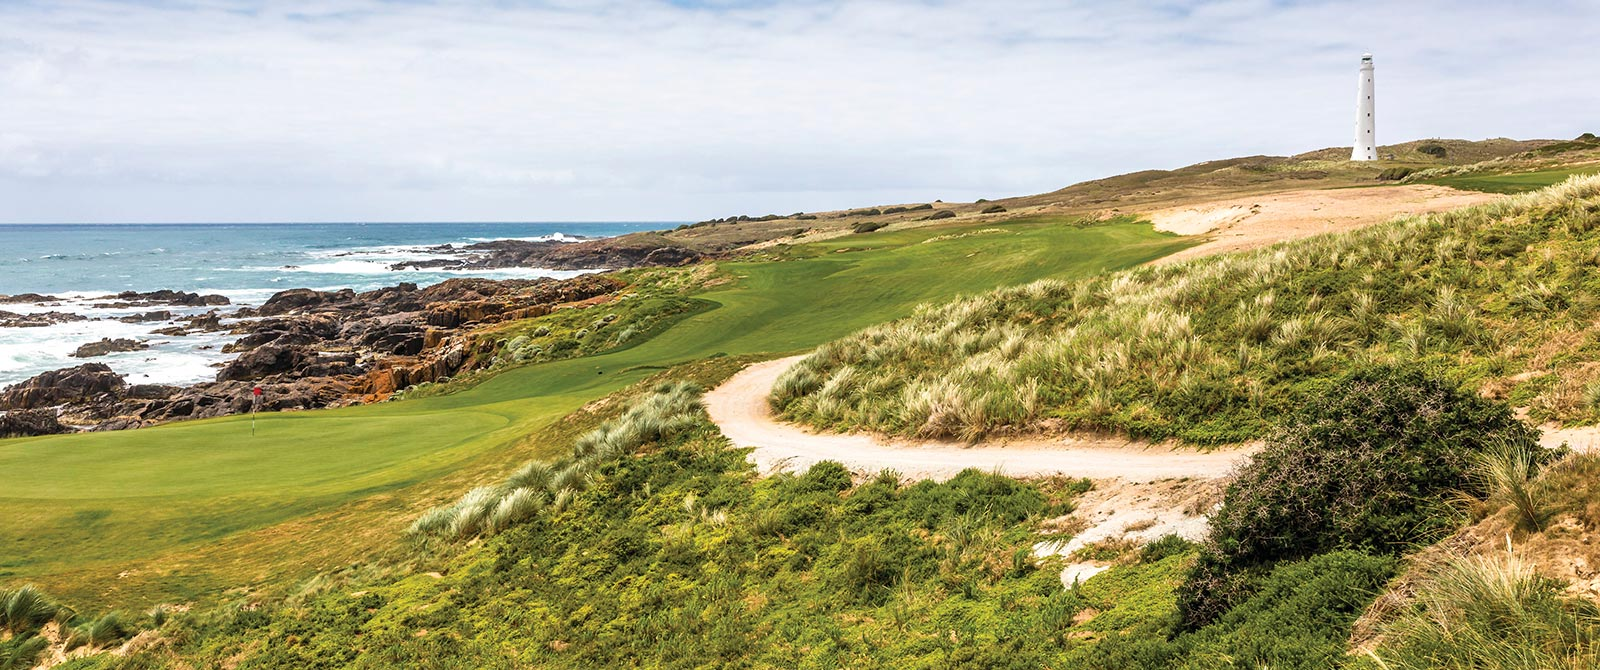 Cape Wickham Links Course, King Island - Best Golf Courses in Australia